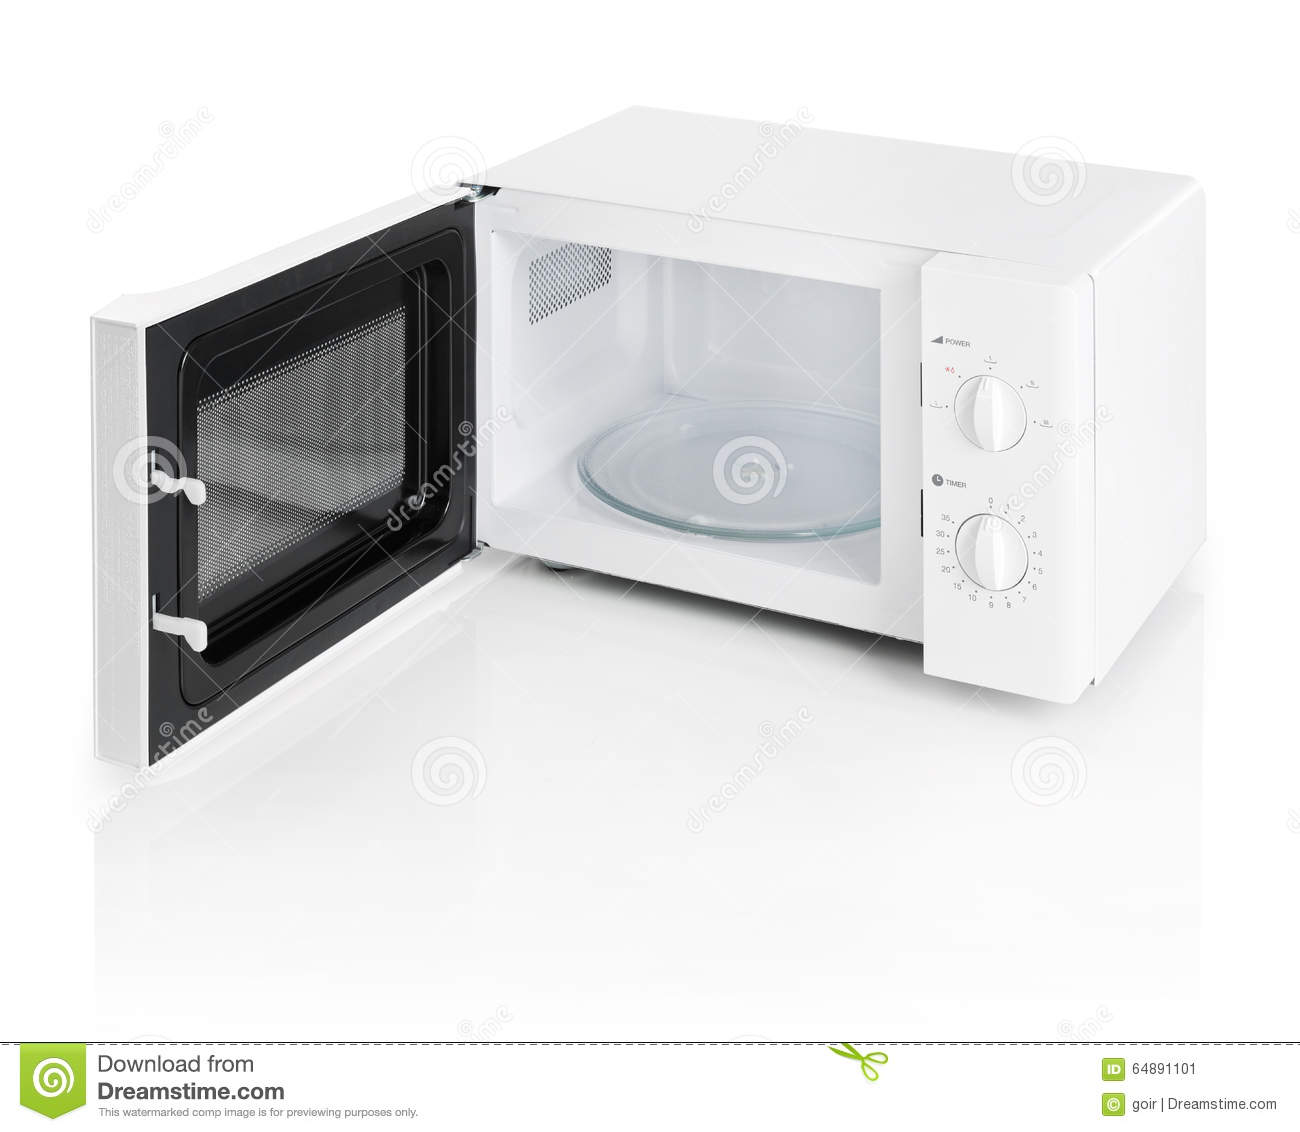 Microwave Oven Isolated On White Stock Photo - Image: 64891101